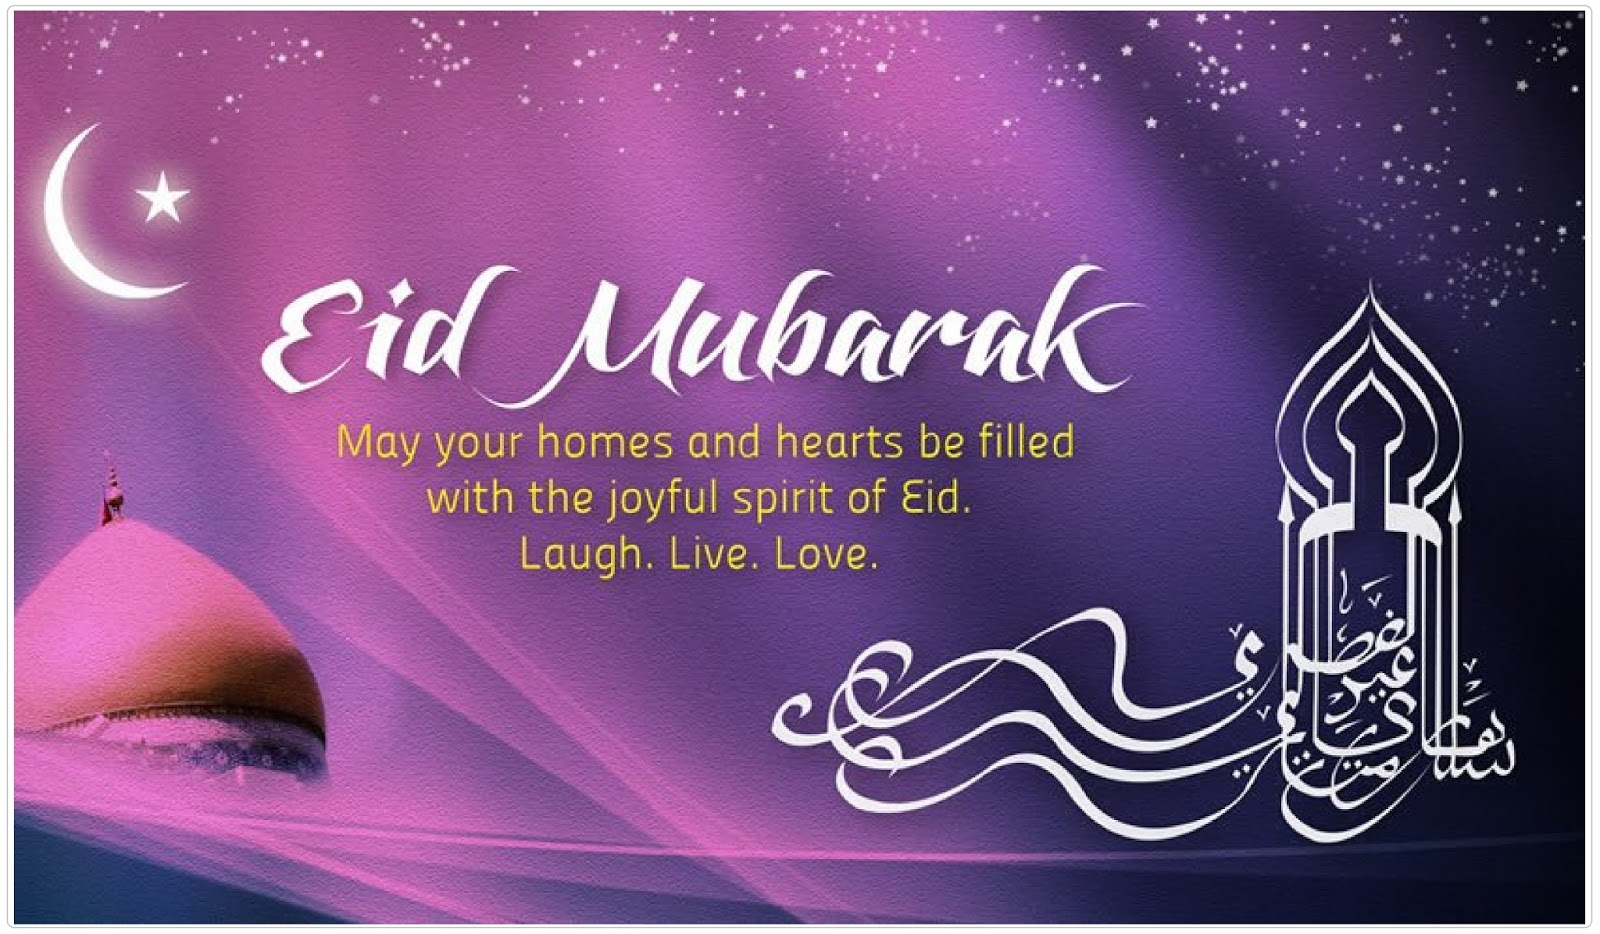 Eid mubarak wishes2018 quotes messages sms greetings status eid greetings sms kristyandbryce Image collections